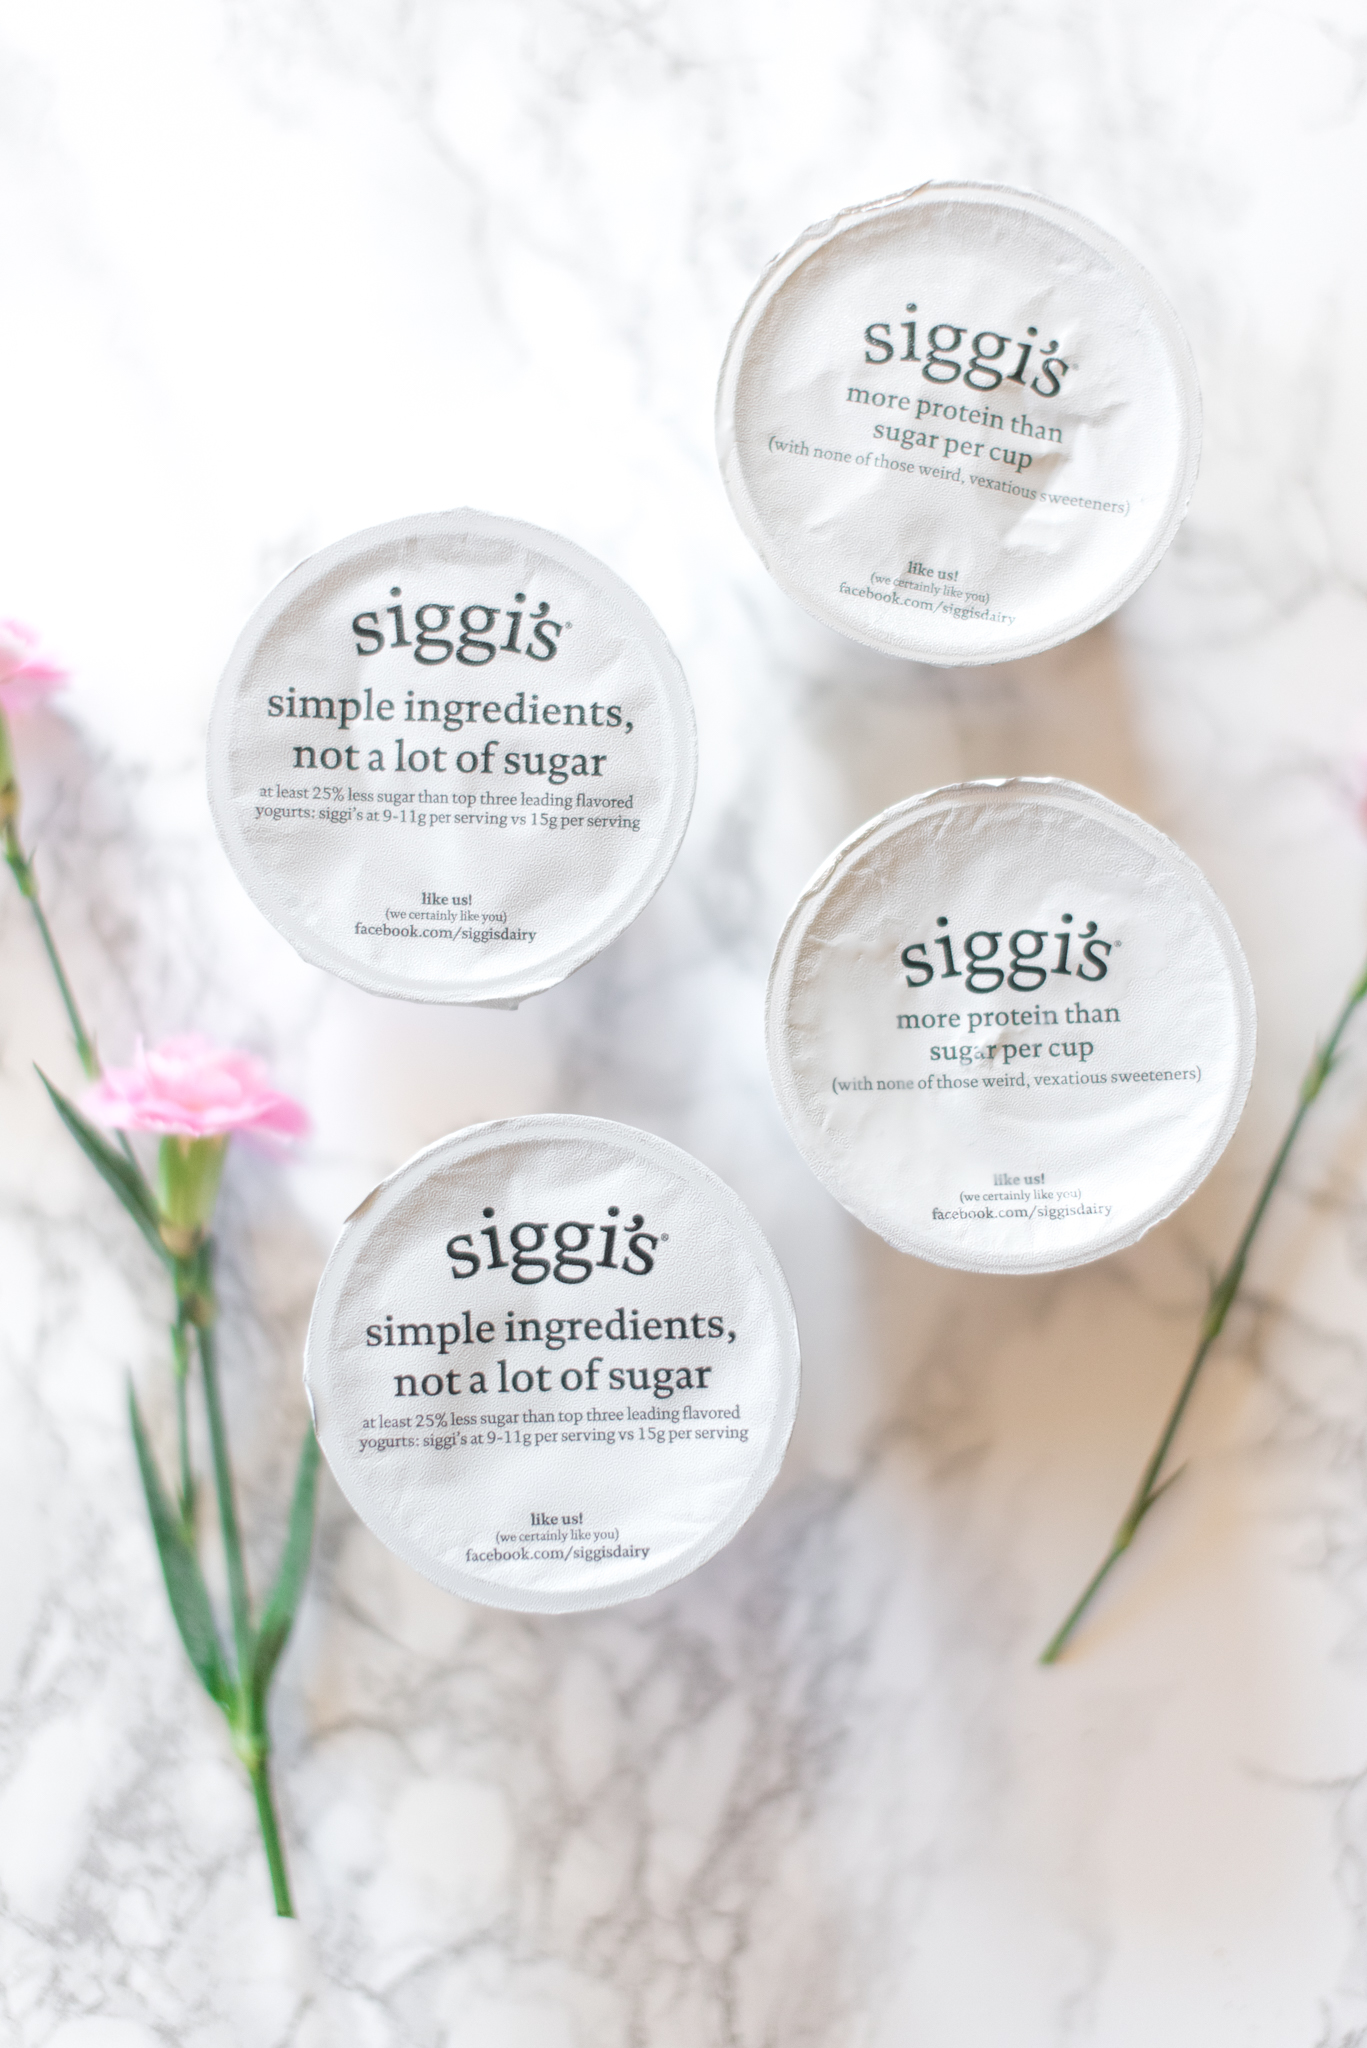 siggis-yogurt-1